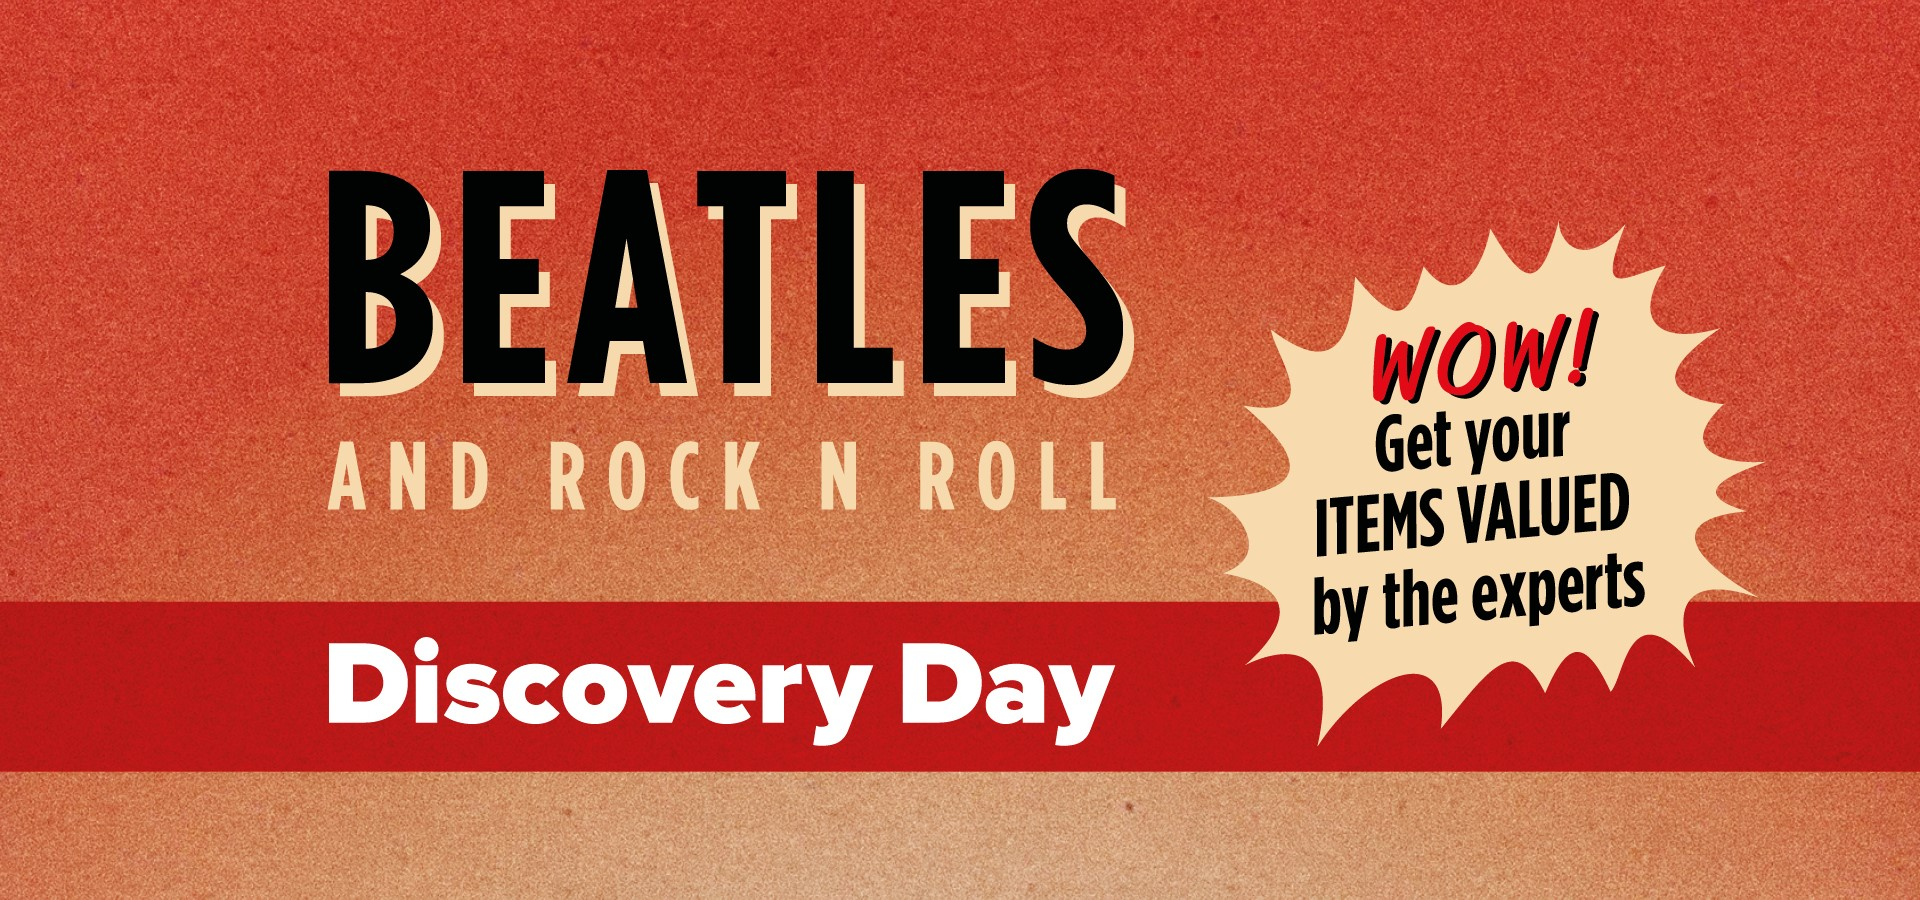 Discovery Day: Hard Rock Cafe New York